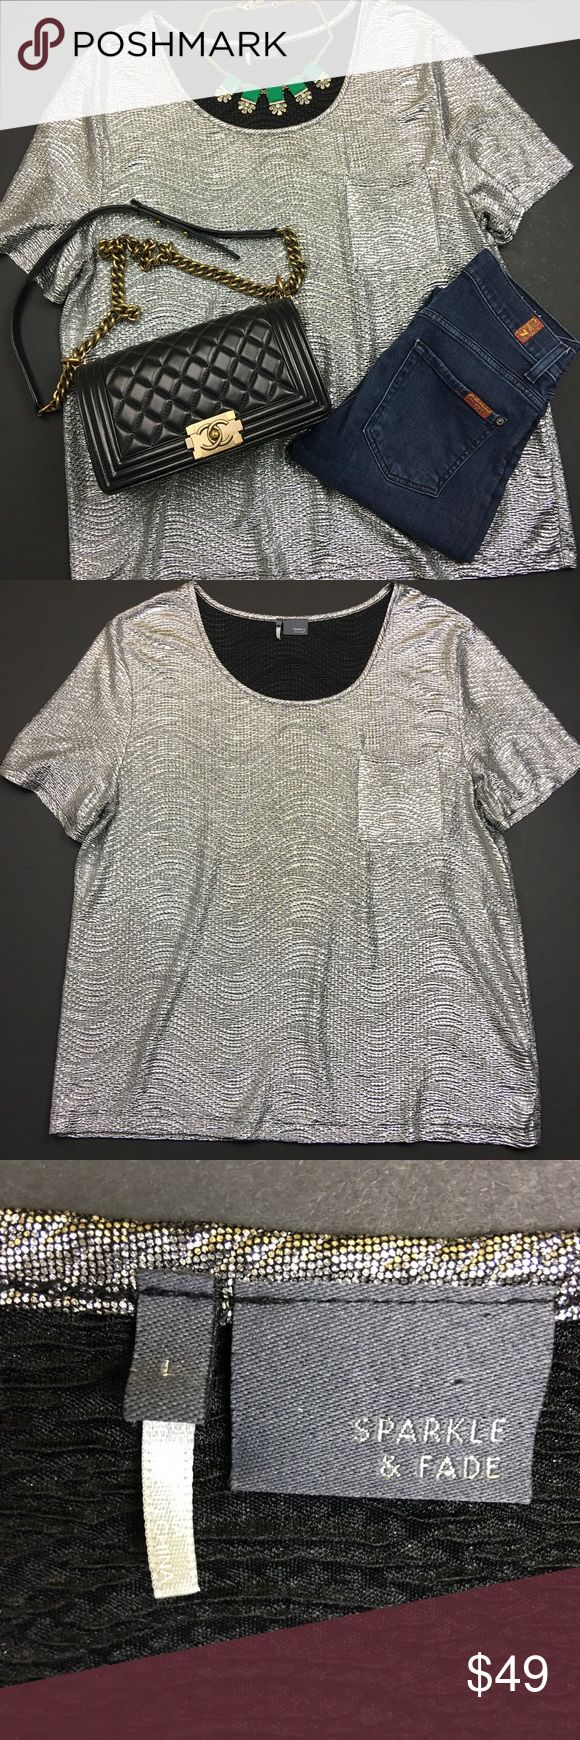 Sparkle & Fade Silver Metallic Tee Used in Excellent Condition/ No Trades/ No PayPal/ Smoke & Pet Free Home/ Please Ask Questions!/ Like what you see but the price too high? Make an offer! Sparkle & Fade Tops Tees - Short Sleeve